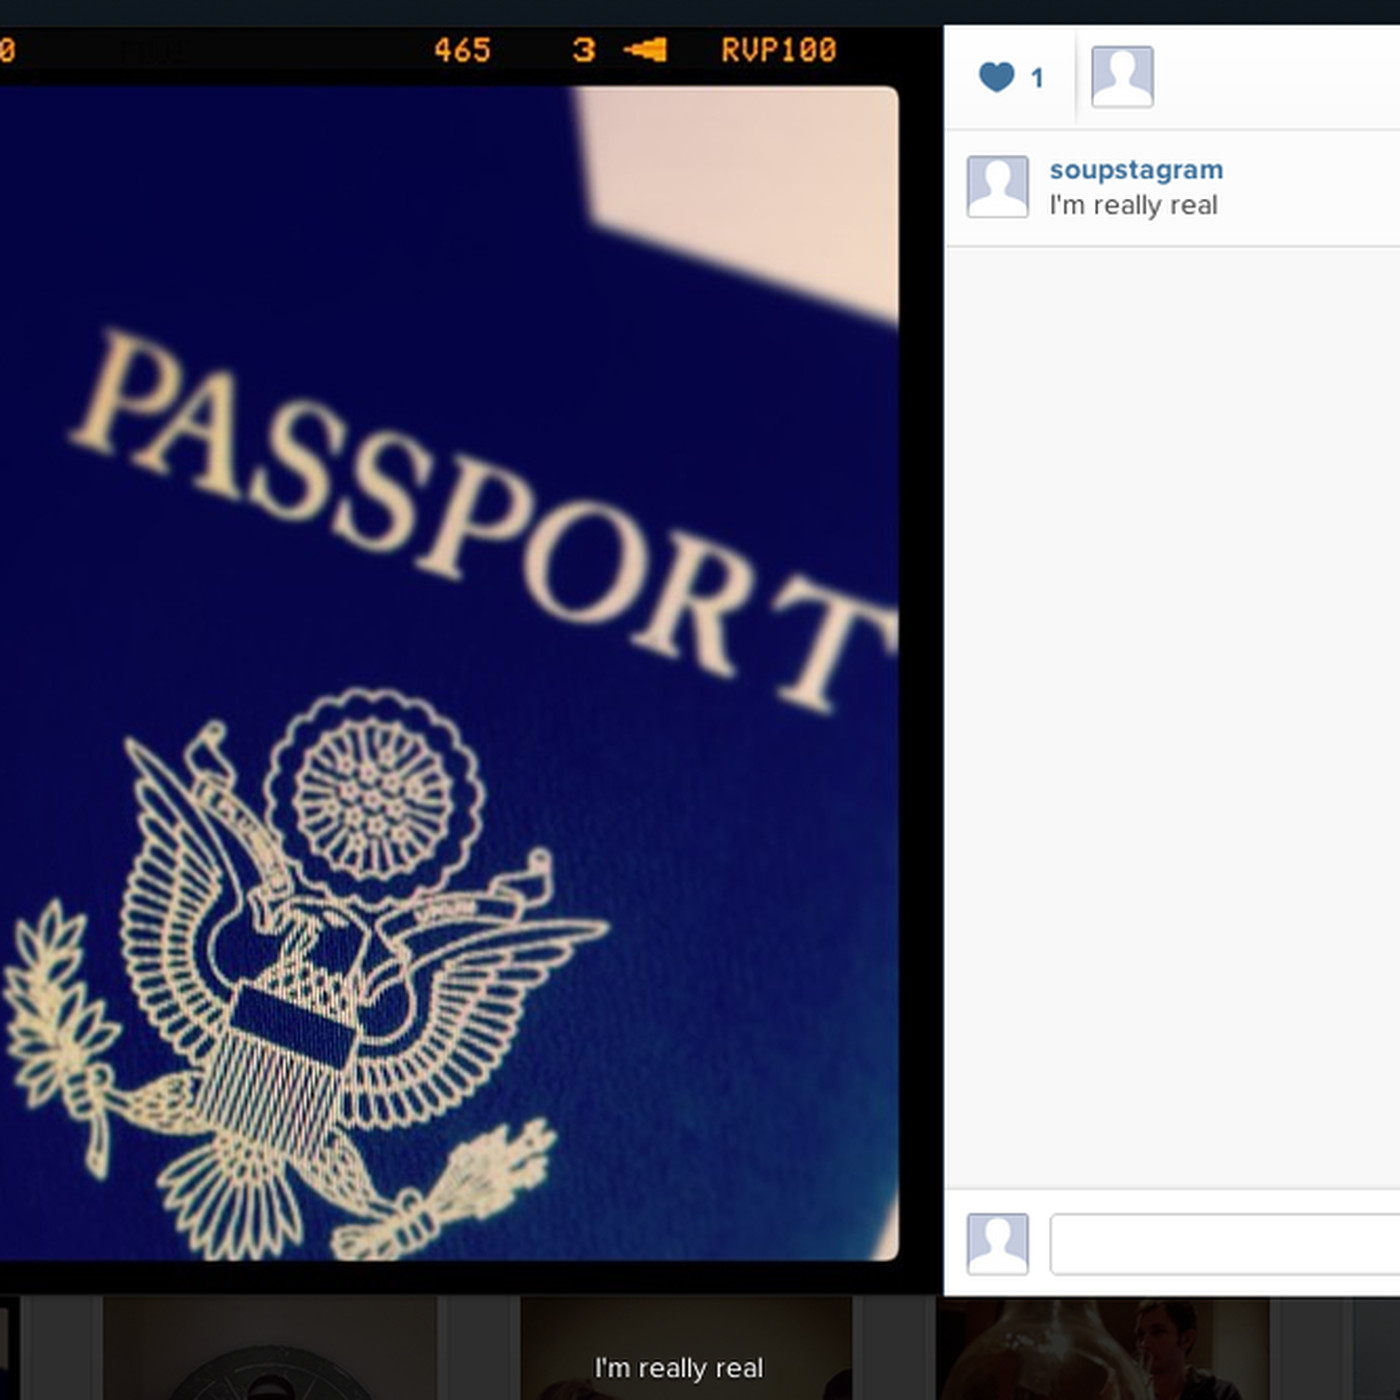 Instagram asking some users to verify their identity with photo ID